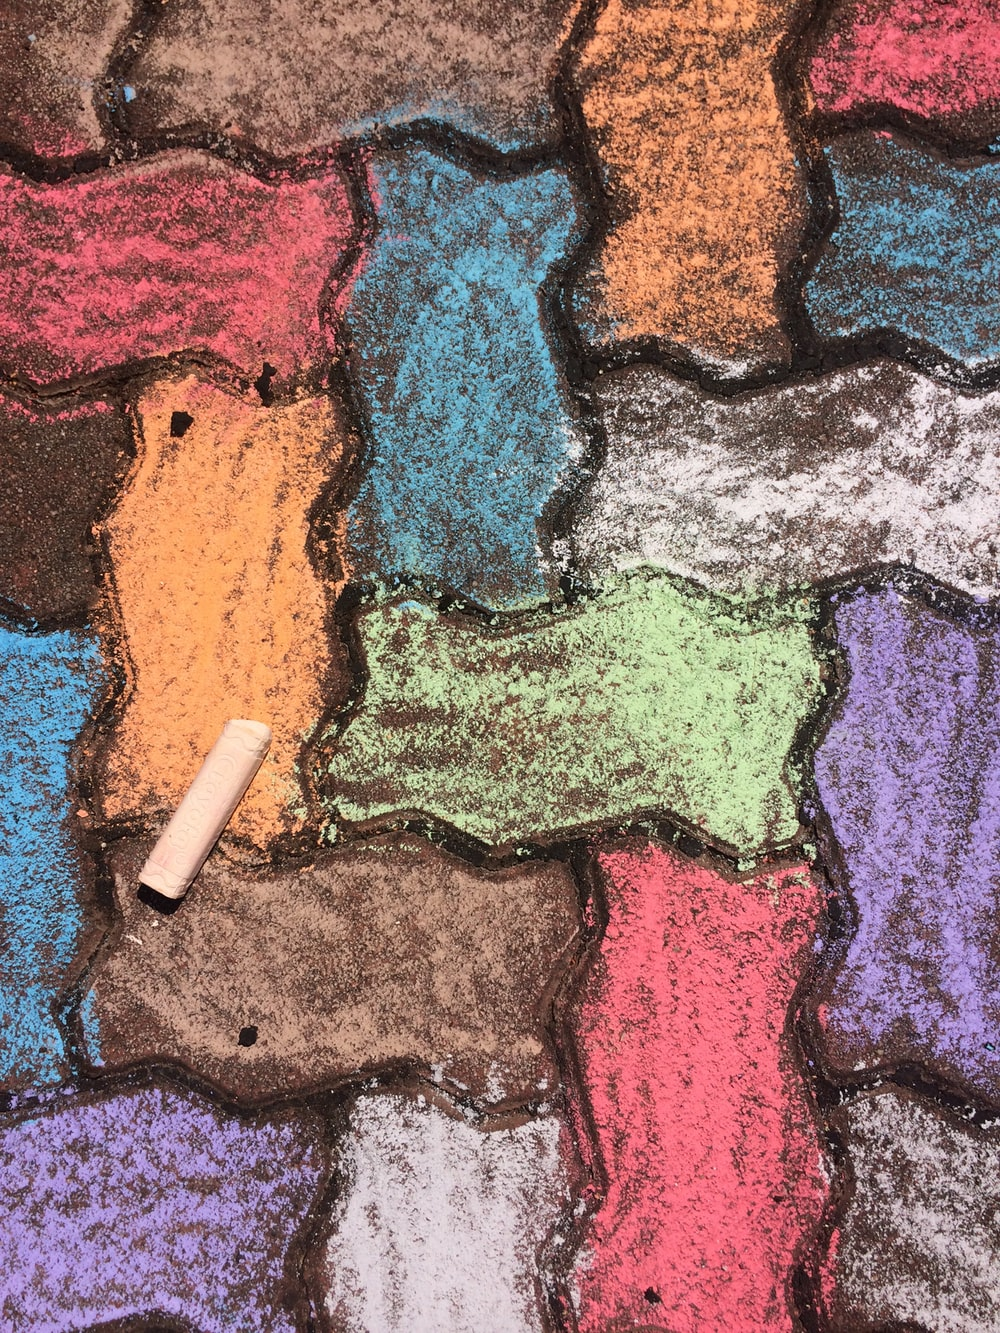 close-up photo of multicolored dumble brick pavement